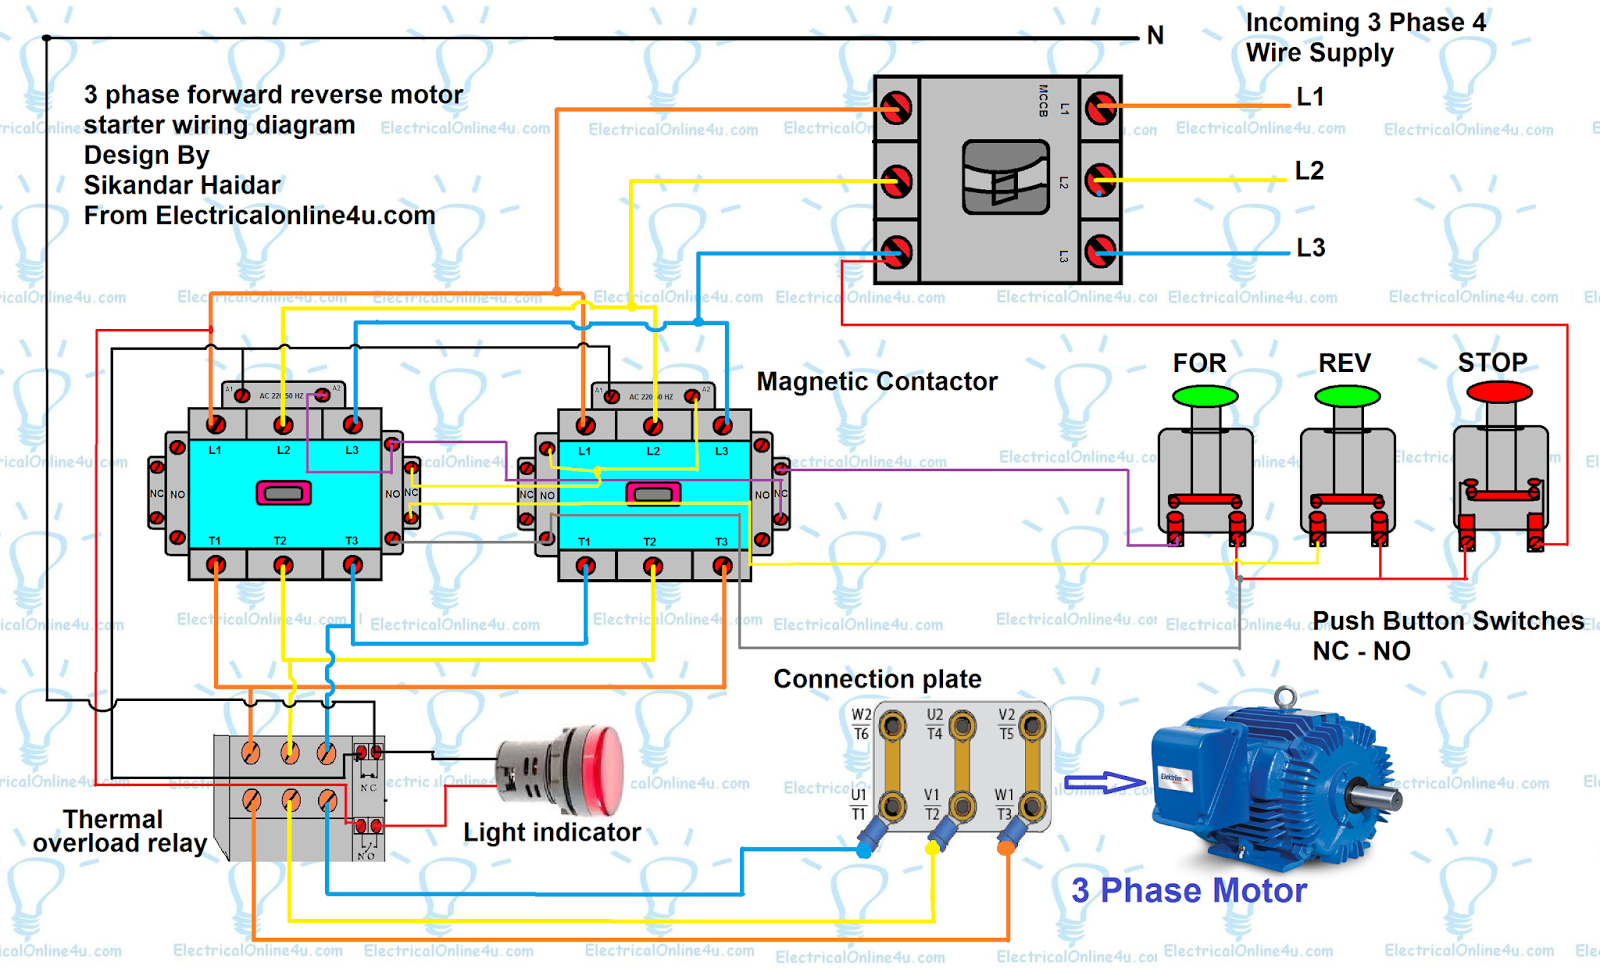 3 Phase Motor Forward Reverse Circuit on single phase reversing starter diagrams